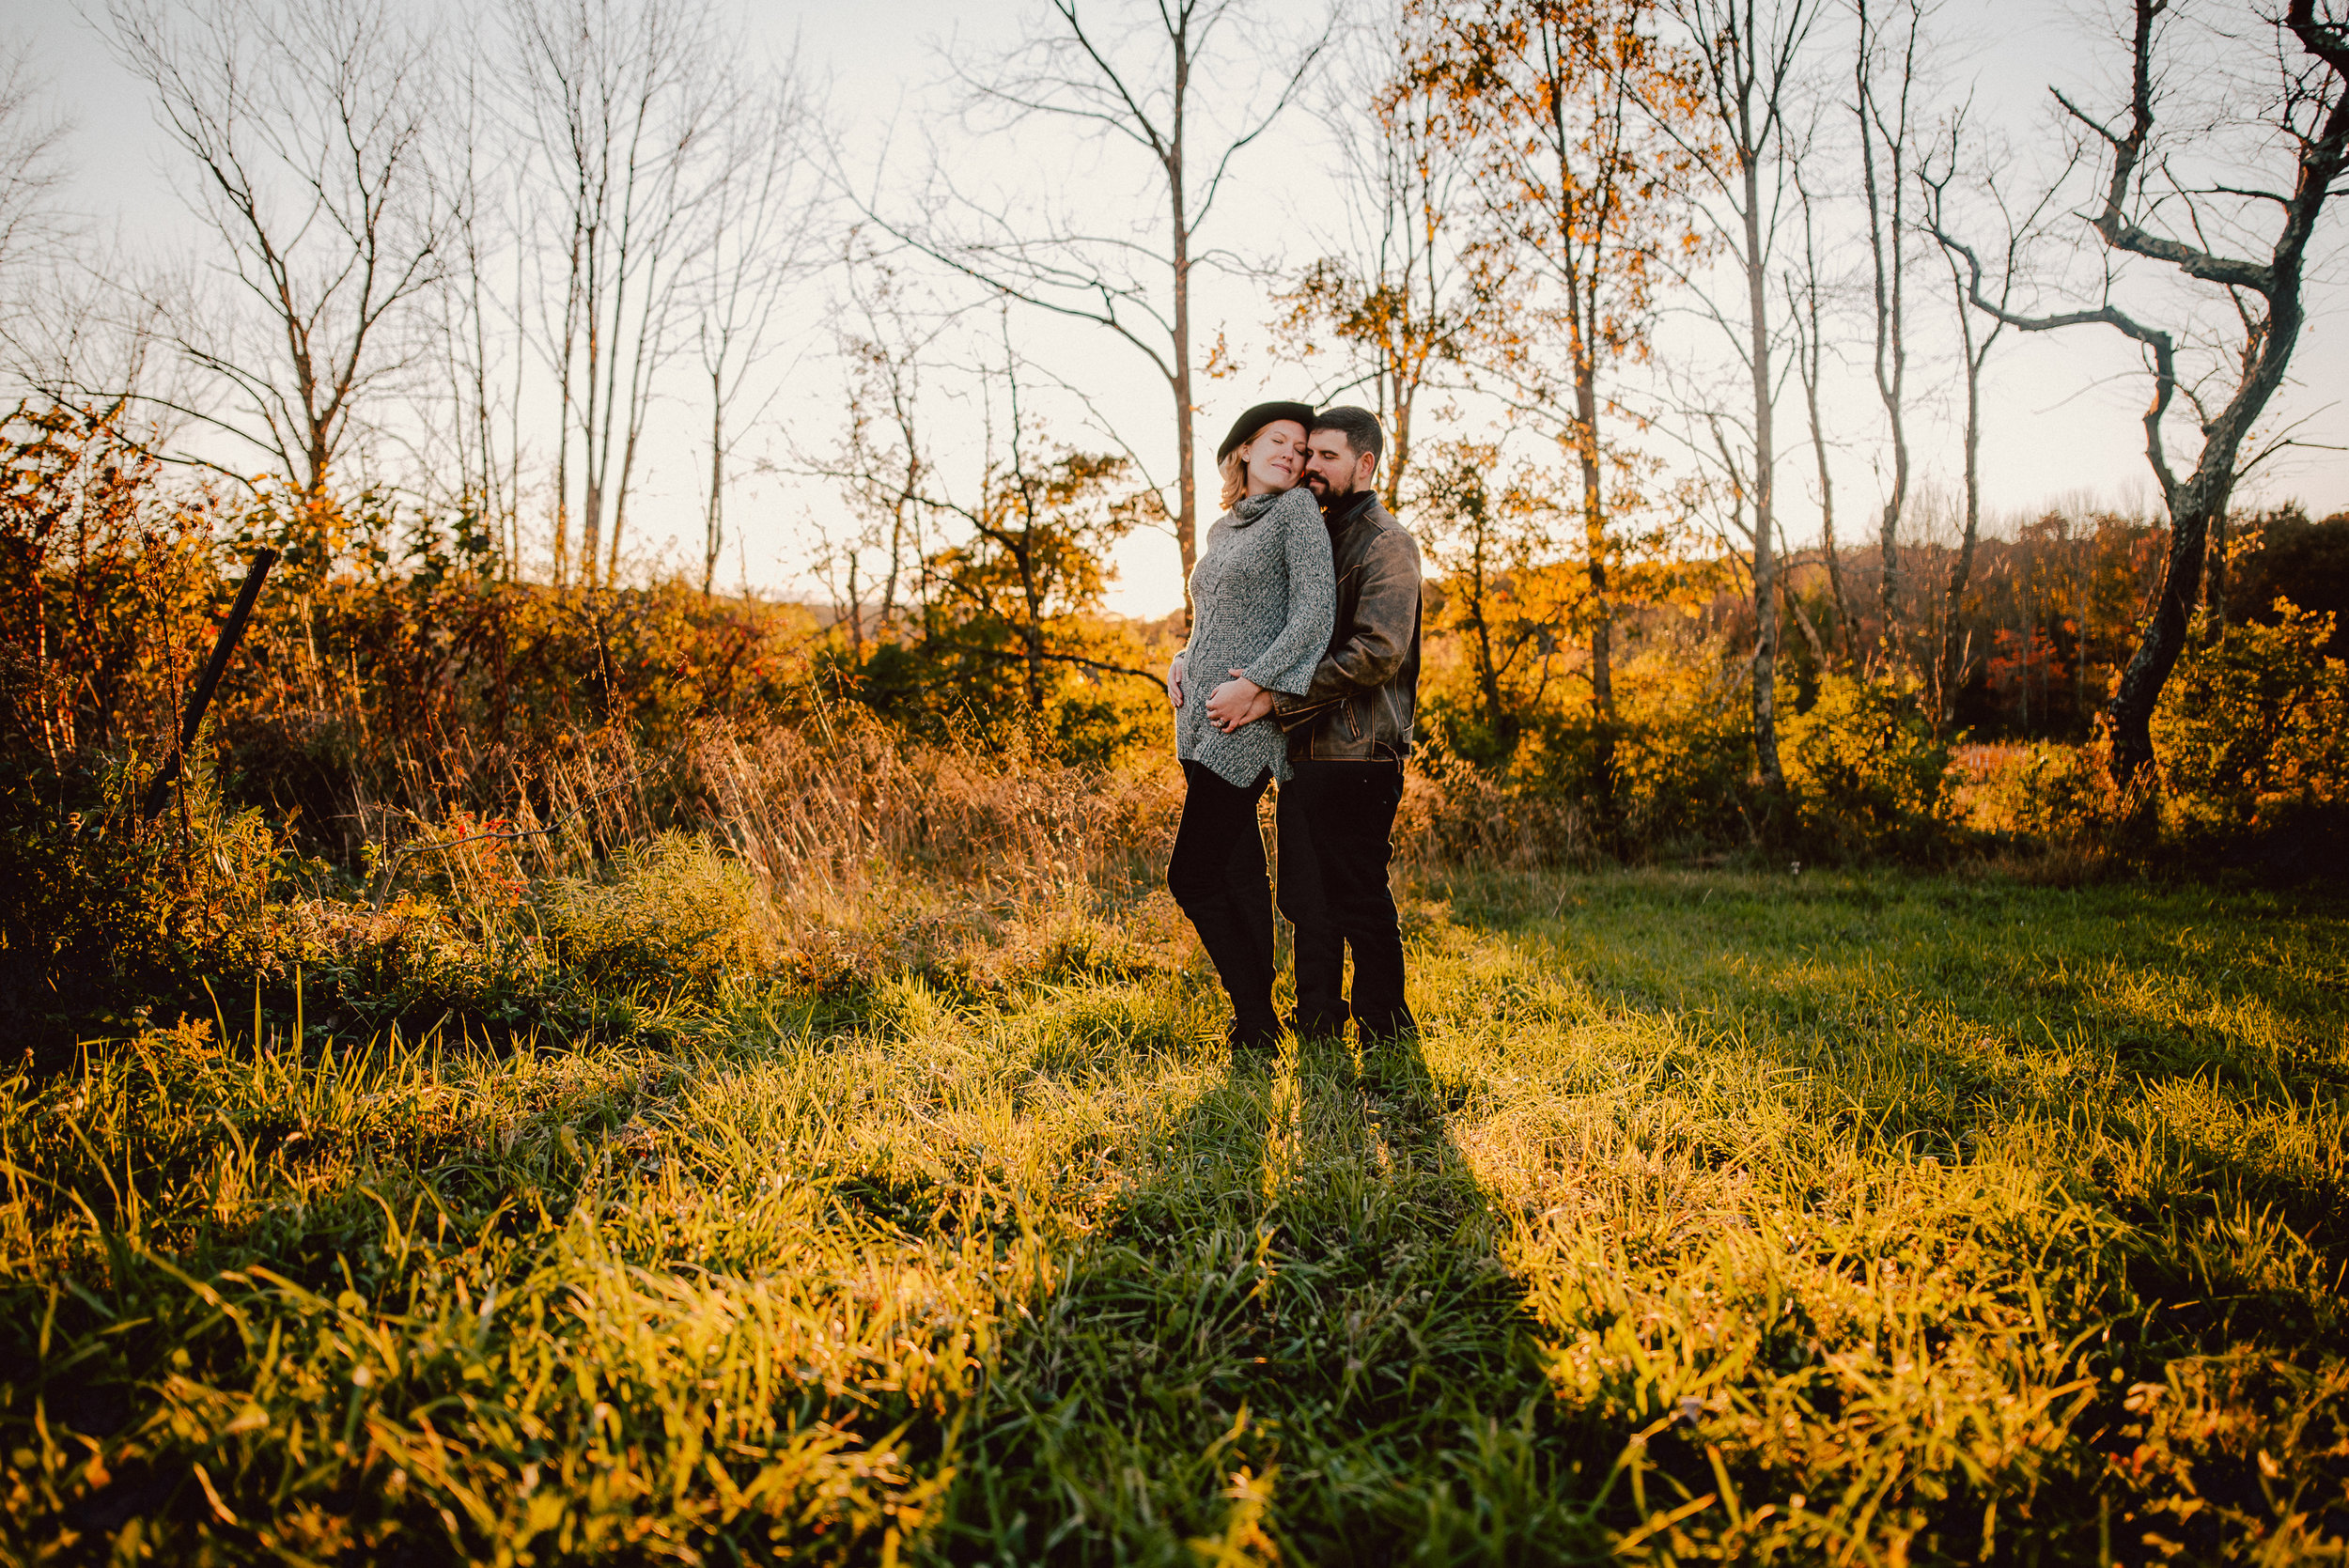 J&J_engagement-154.jpg